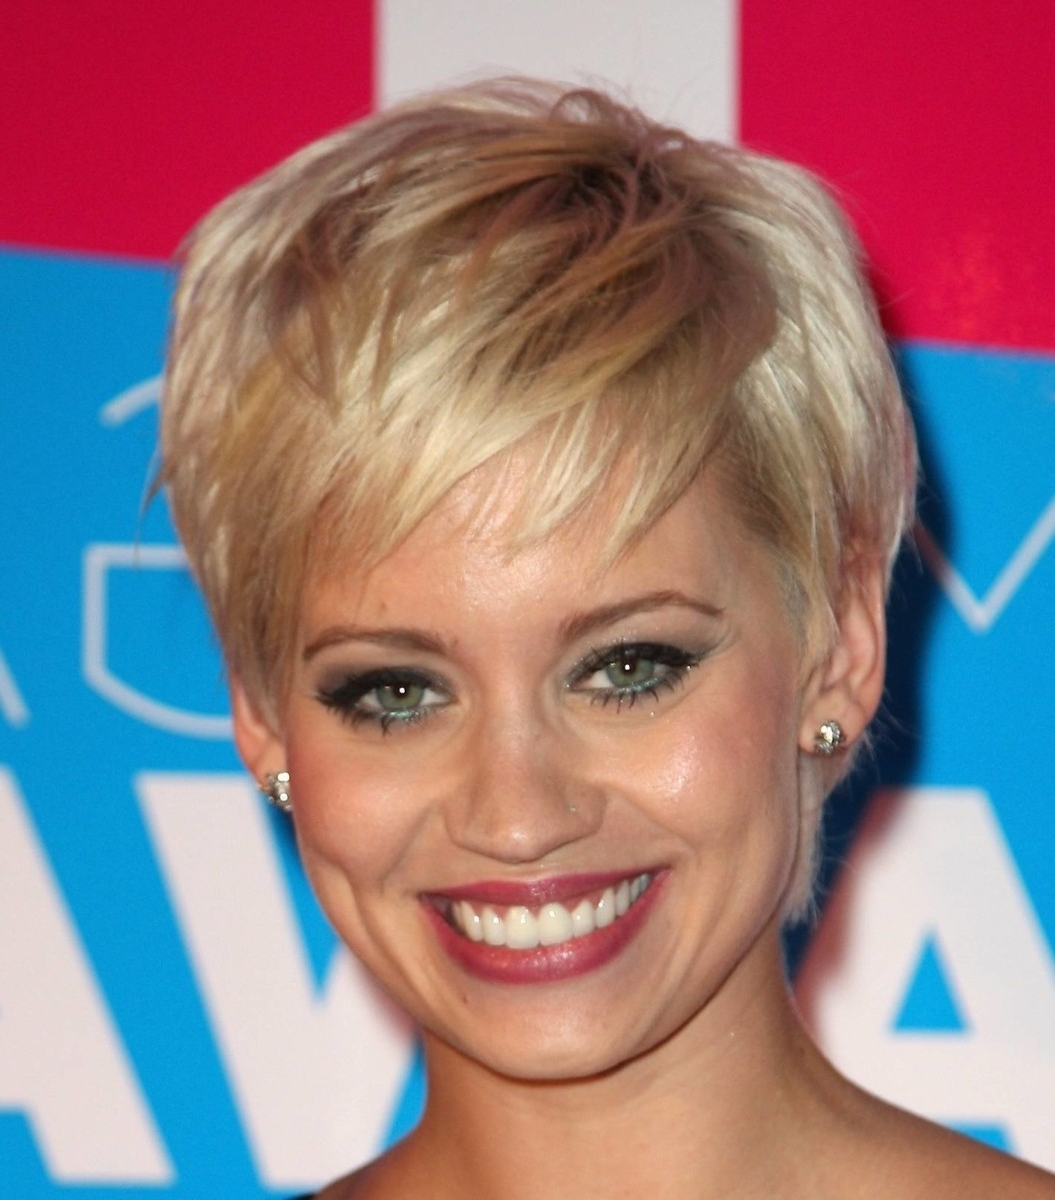 Short Haircut For Round Face Pixie Hairstyle For Round Face2 Pertaining To Most Recently Pixie Hairstyles For Chubby Faces (View 13 of 15)